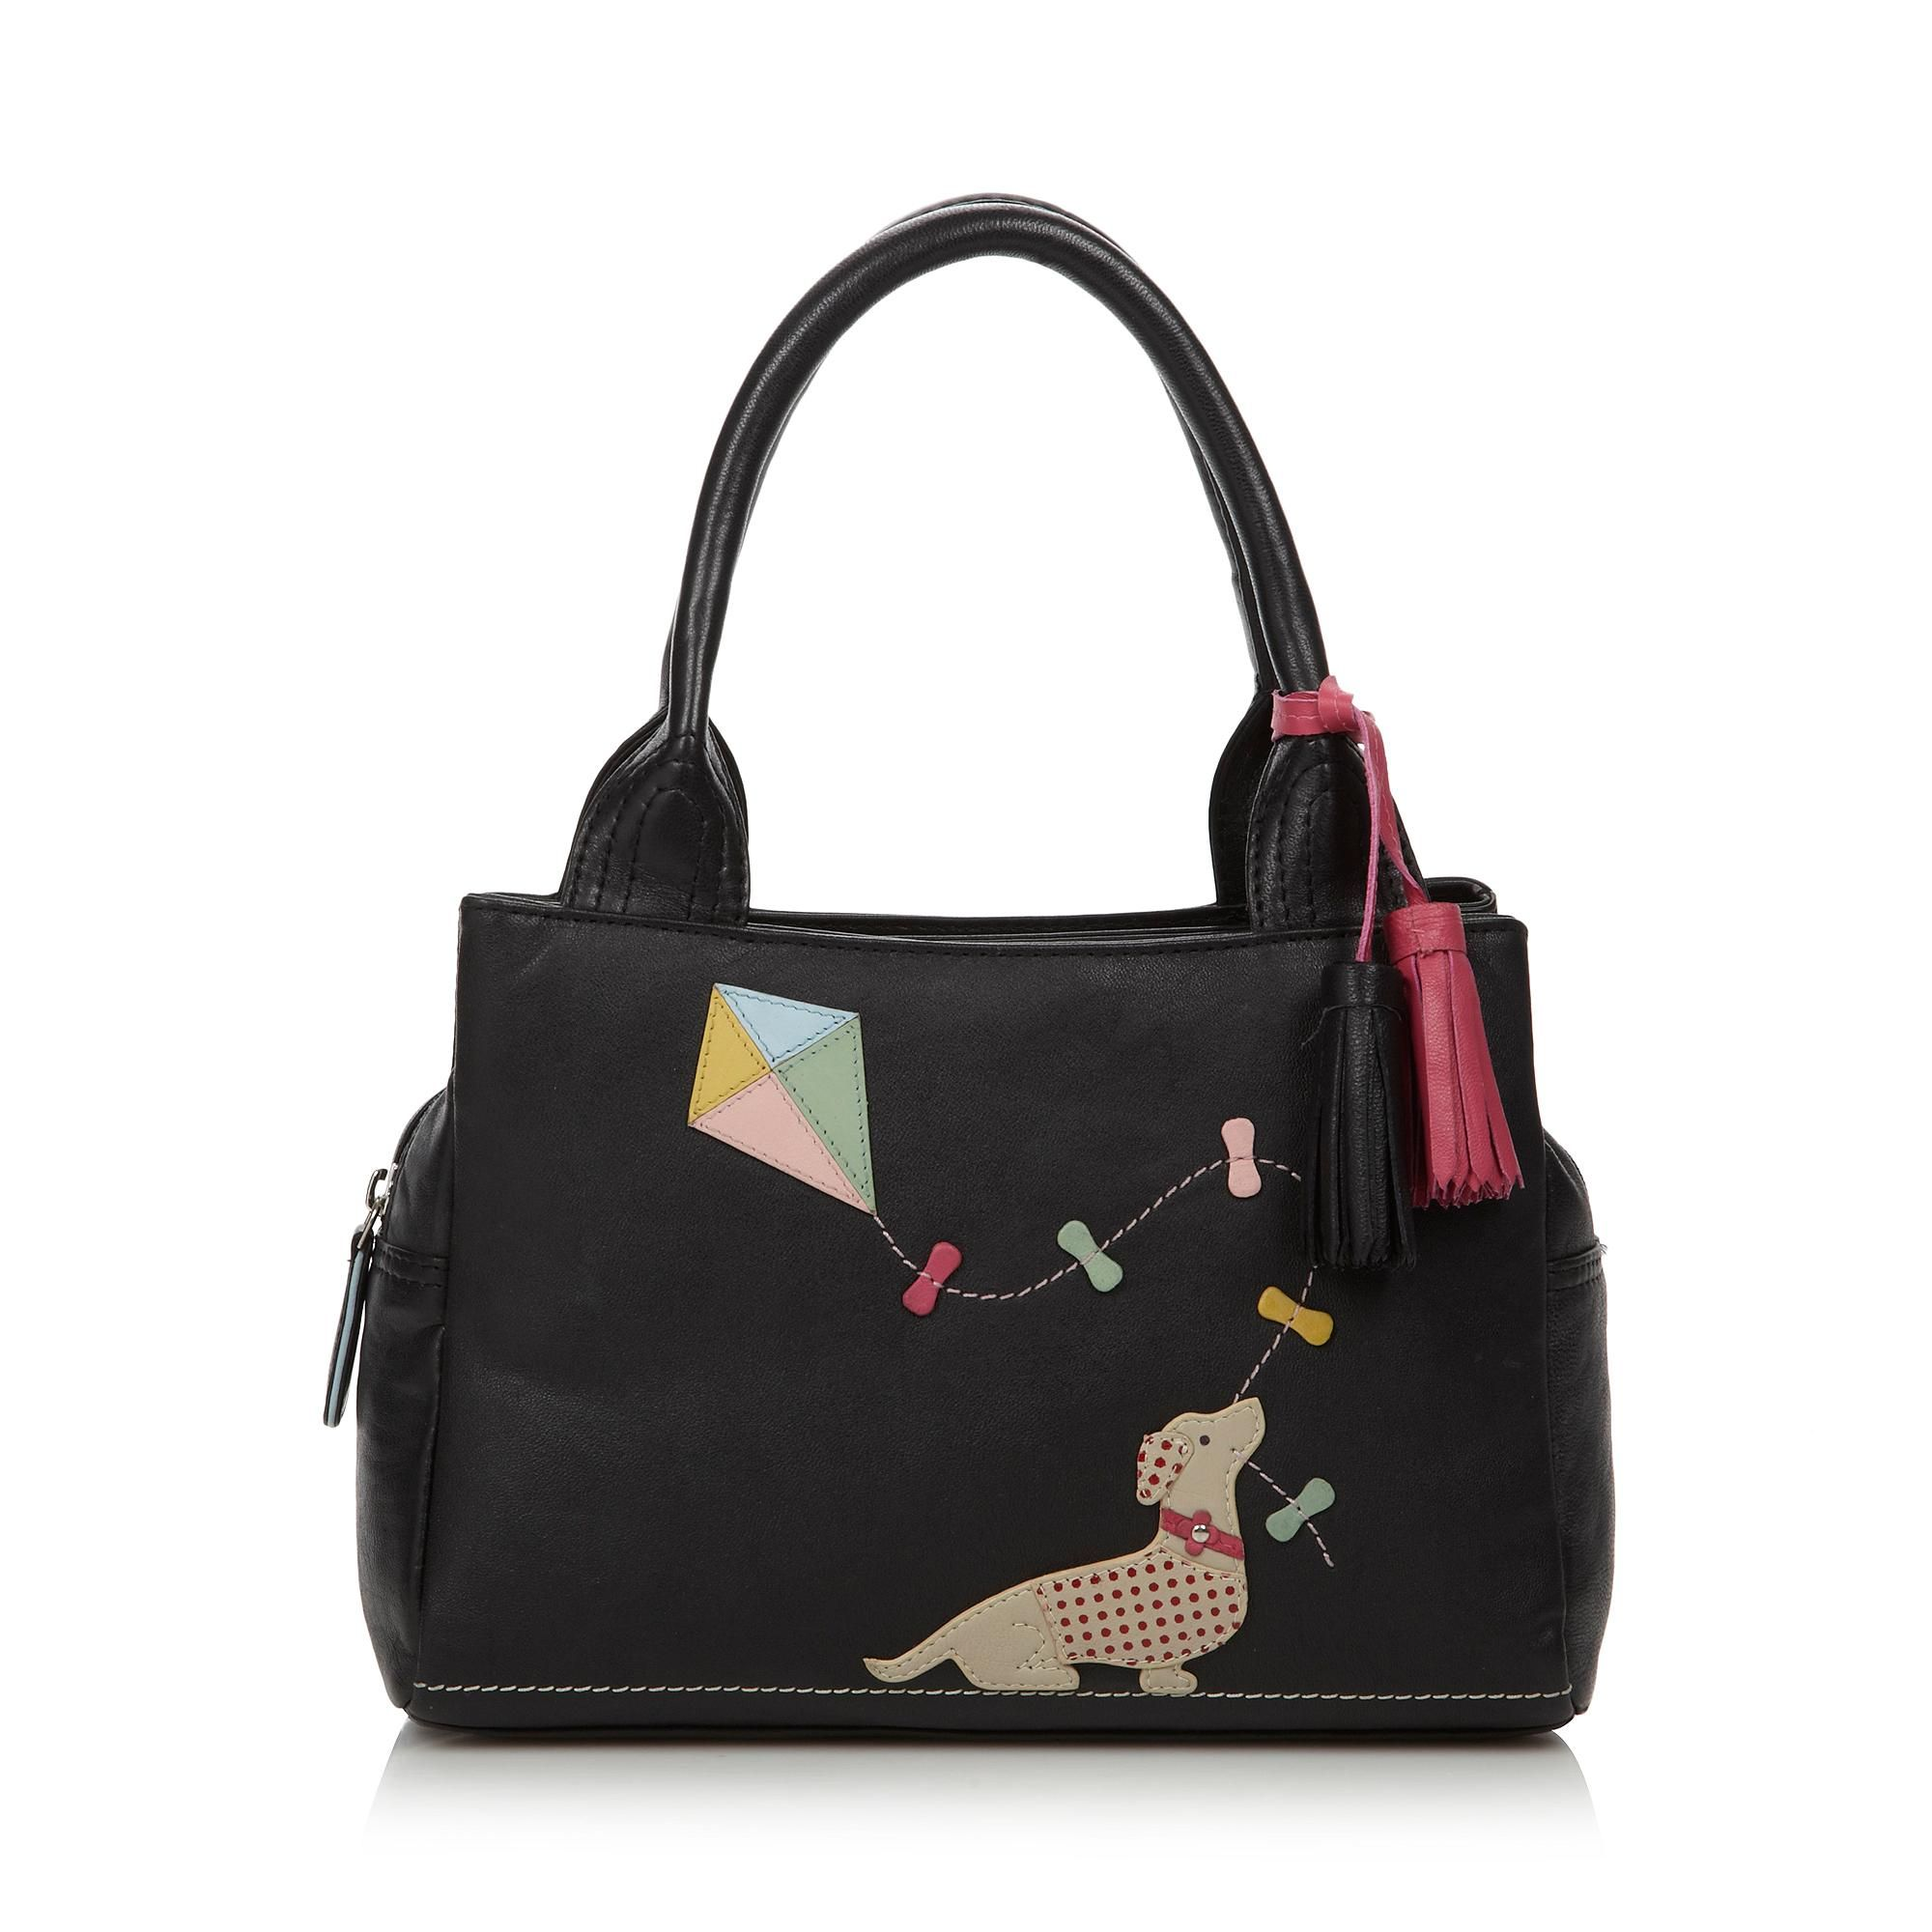 Black leather applique dog grab bag - Debenhams.com